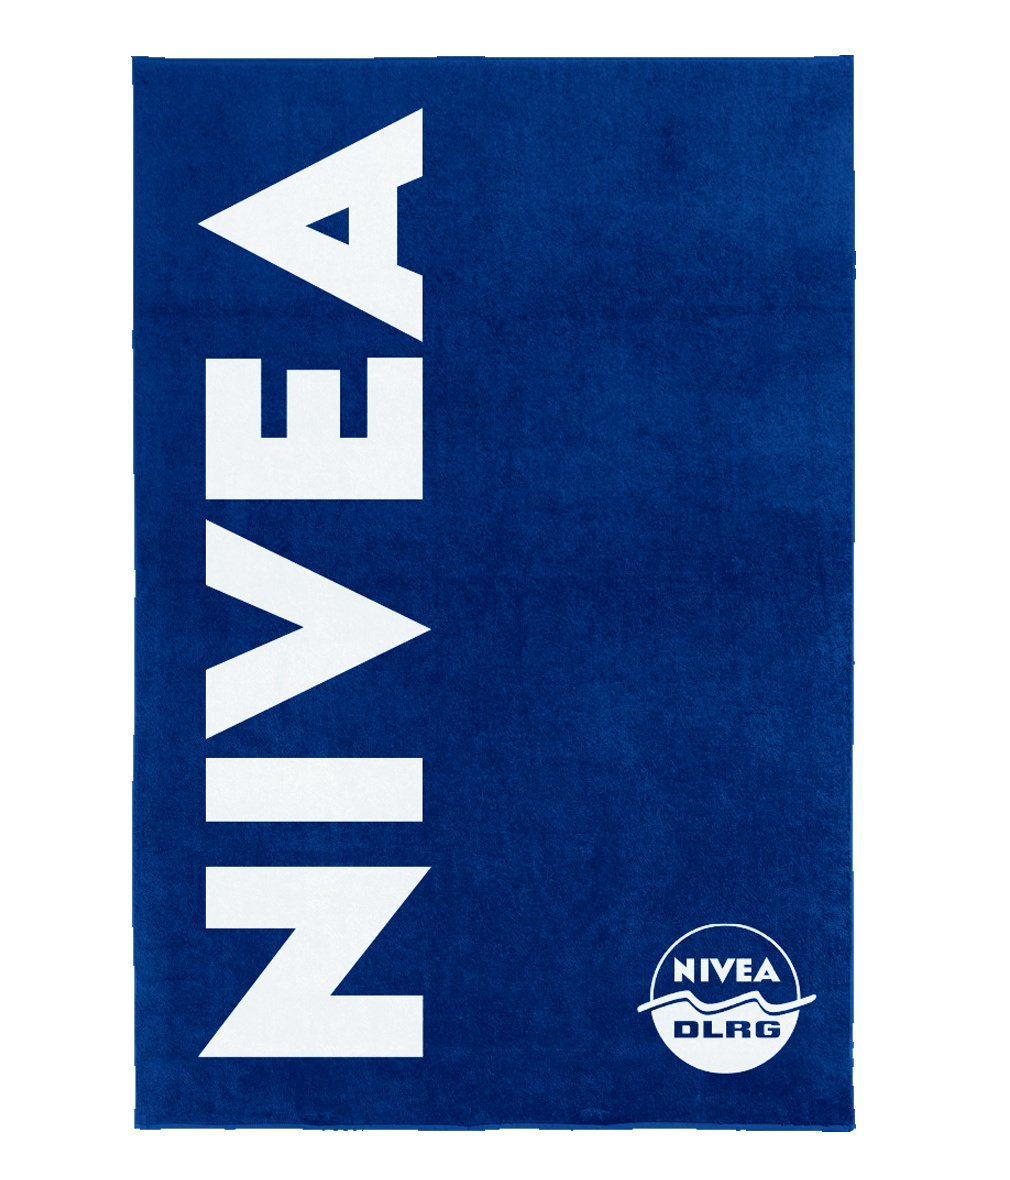 Nivea Handtuch amazon